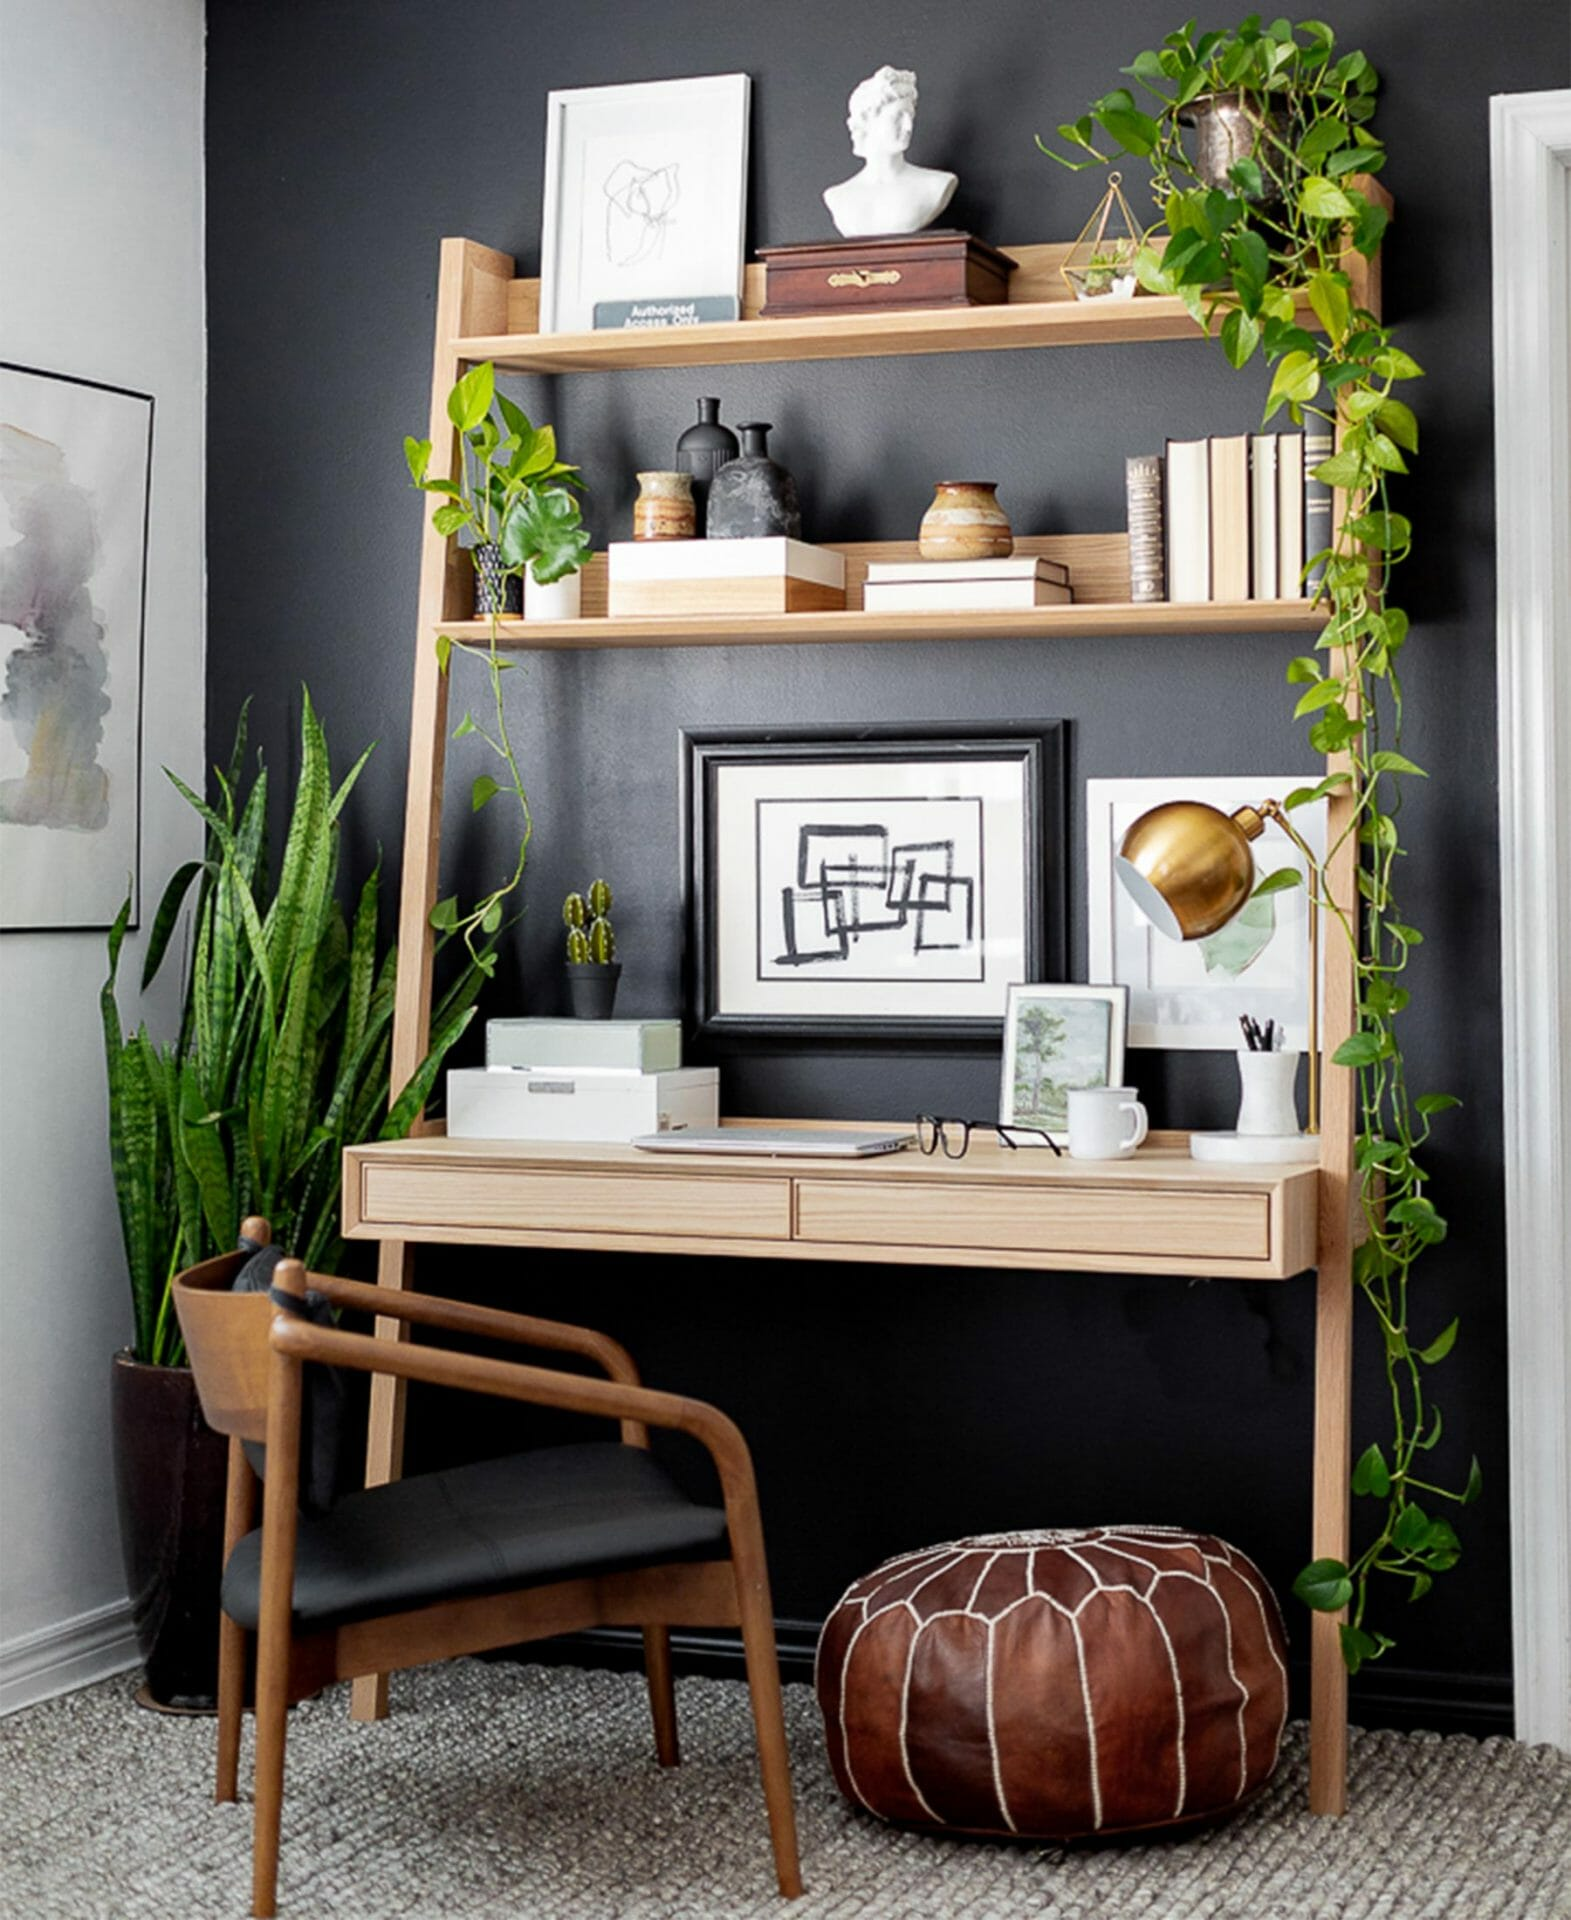 A Fantol Desk is shown against a dark wall with plants and Lento Chair